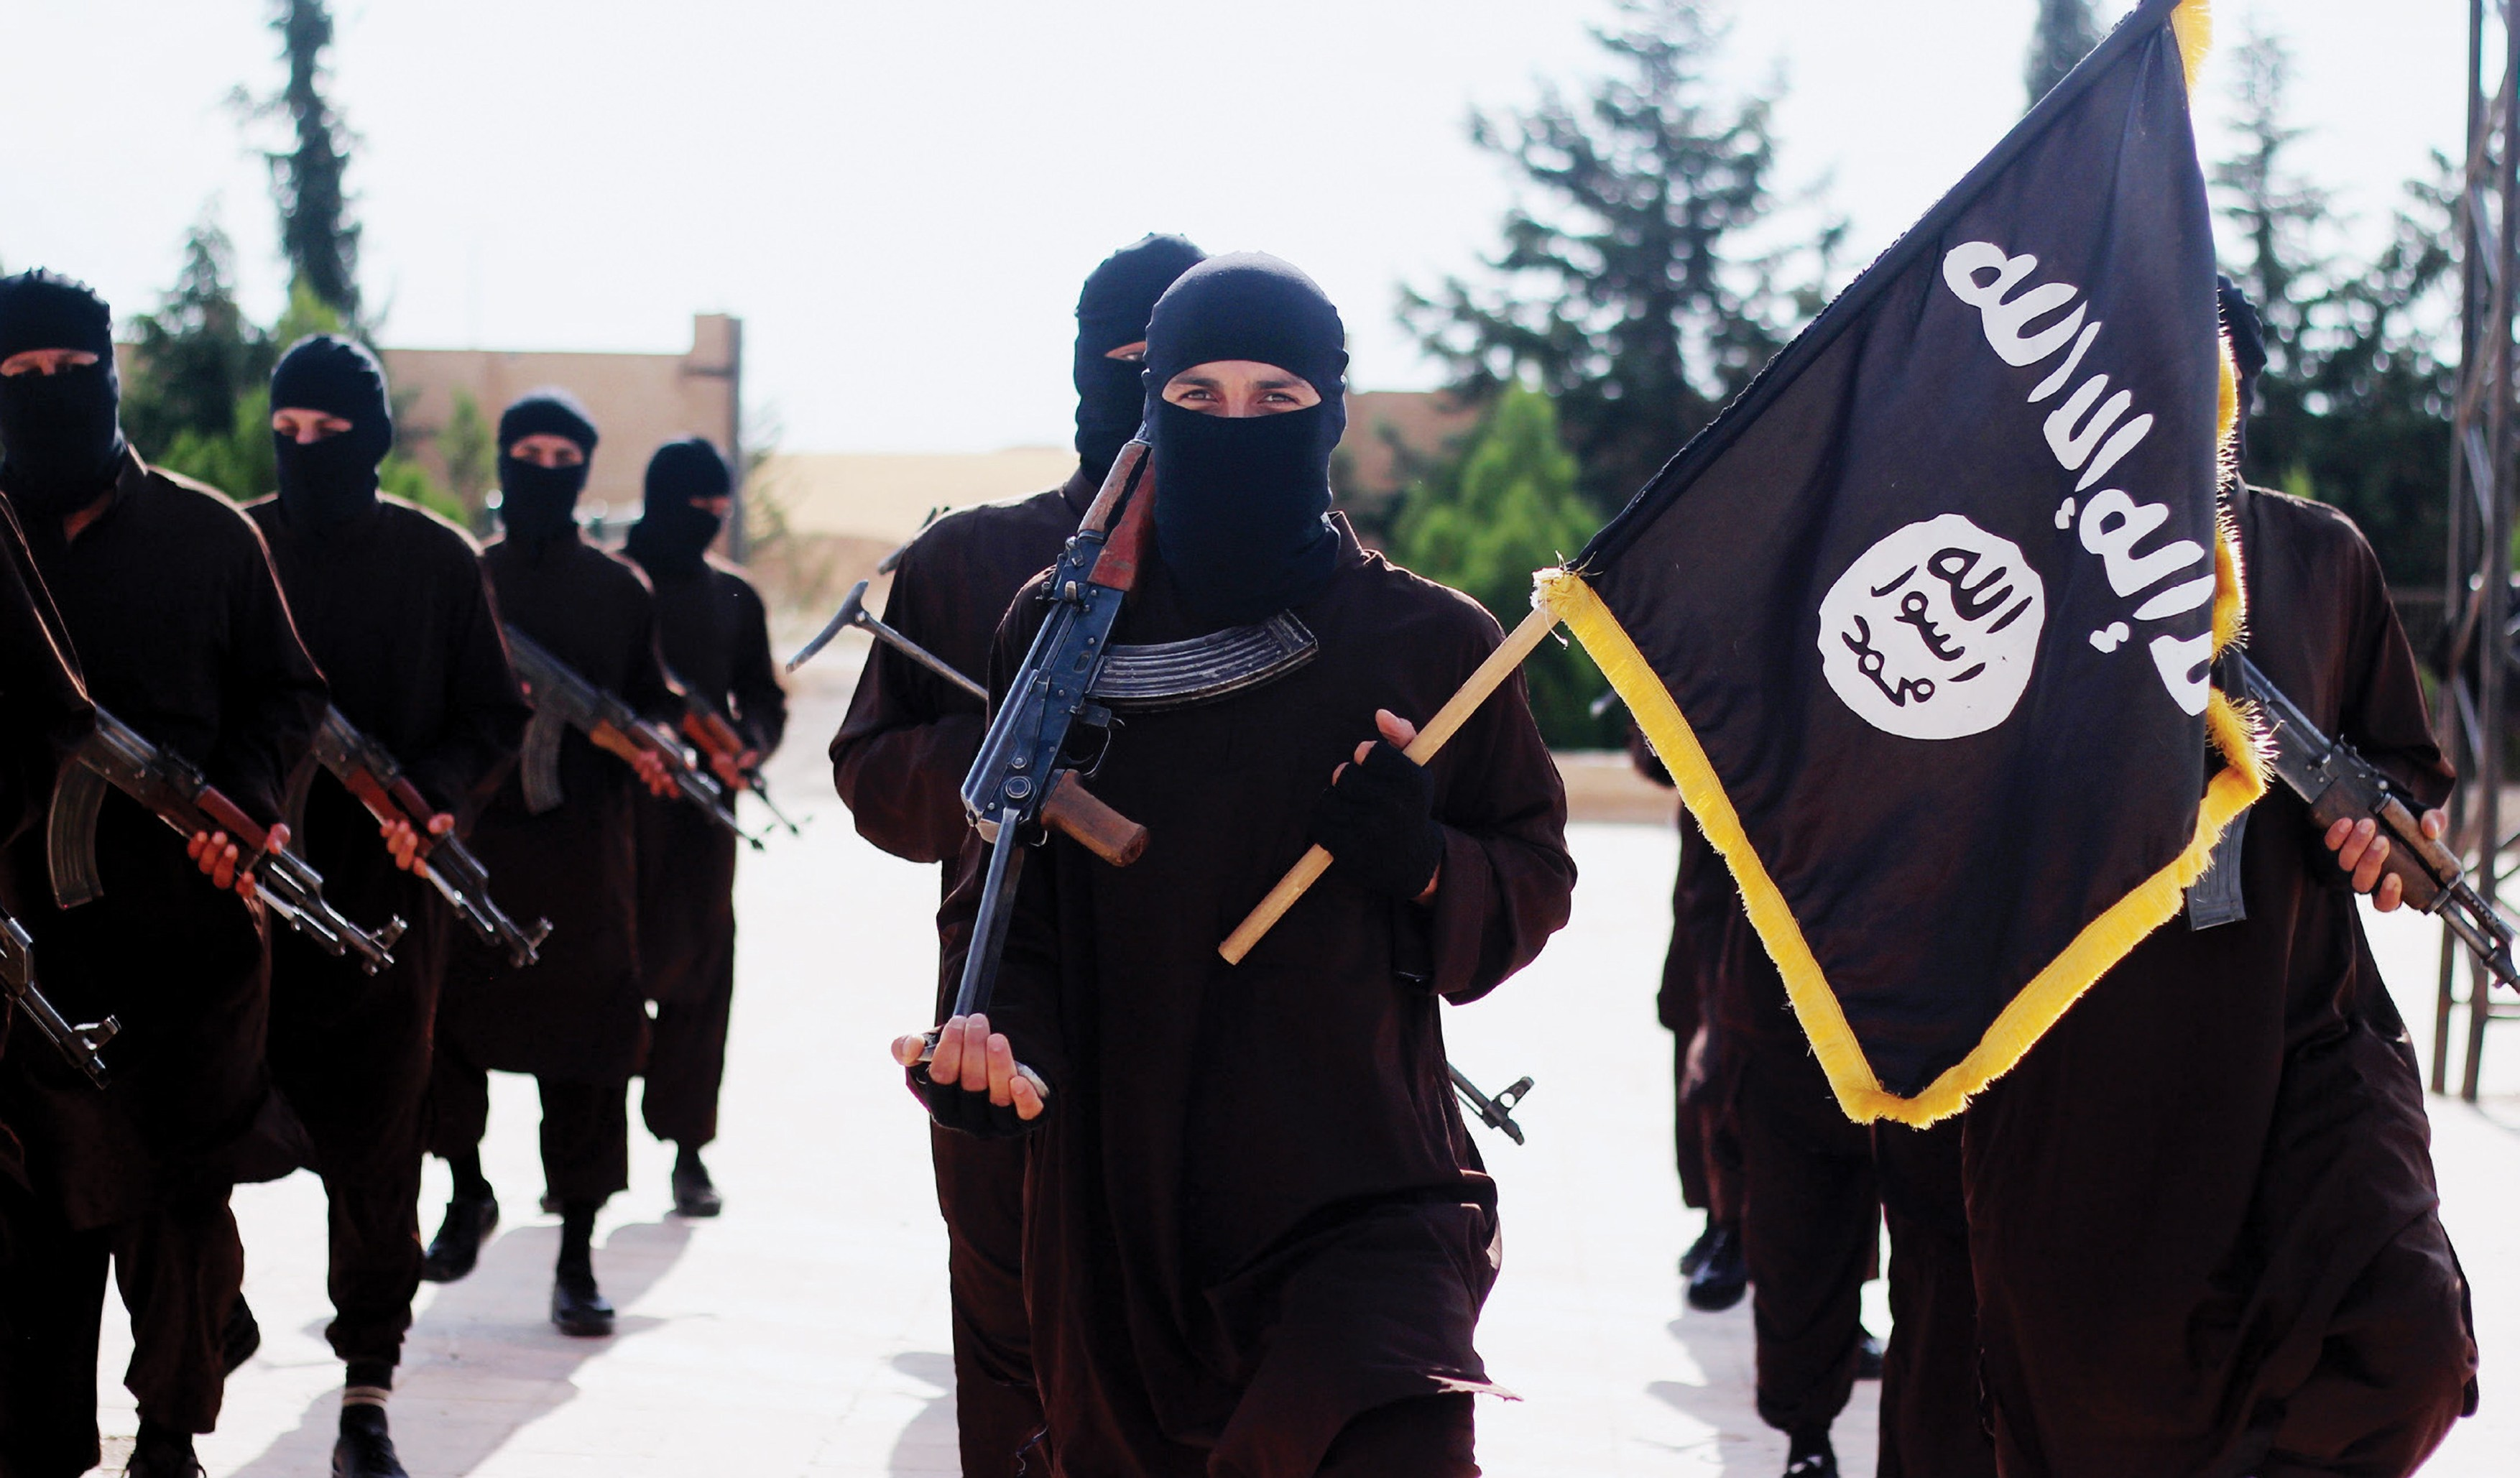 Jan. 19, 2015 - Raqqua, Syria - Islamic State of Iraq and the Levant propaganda photo showing masked militants holding the ISIS black banner of Muhammad., Image: 266955336, License: Rights-managed, Restrictions: , Model Release: no, Credit line: Profimedia, Zuma Press - News